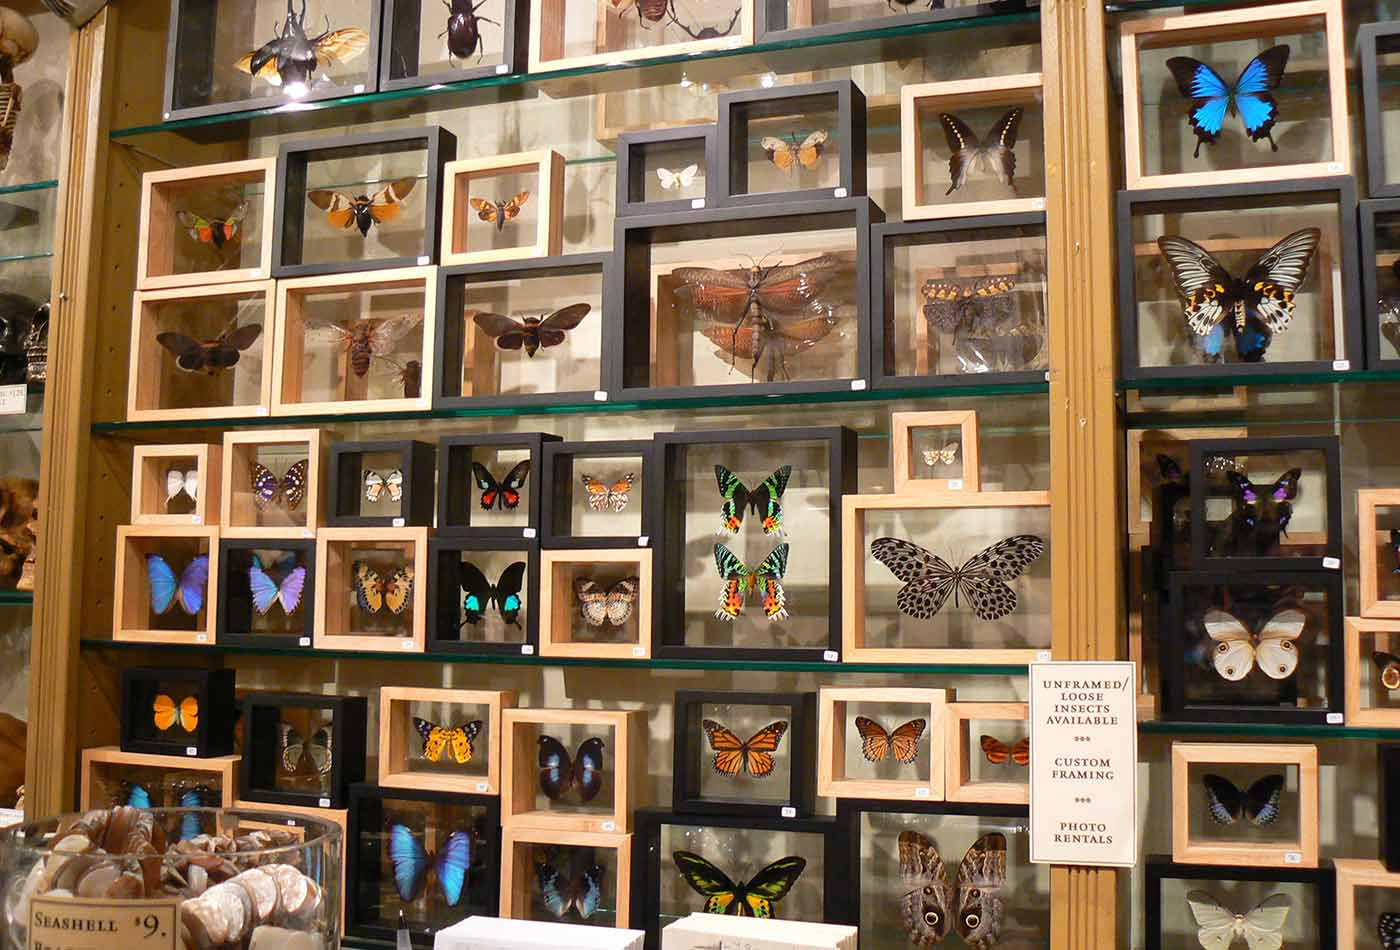 Framed Butterfly Displays